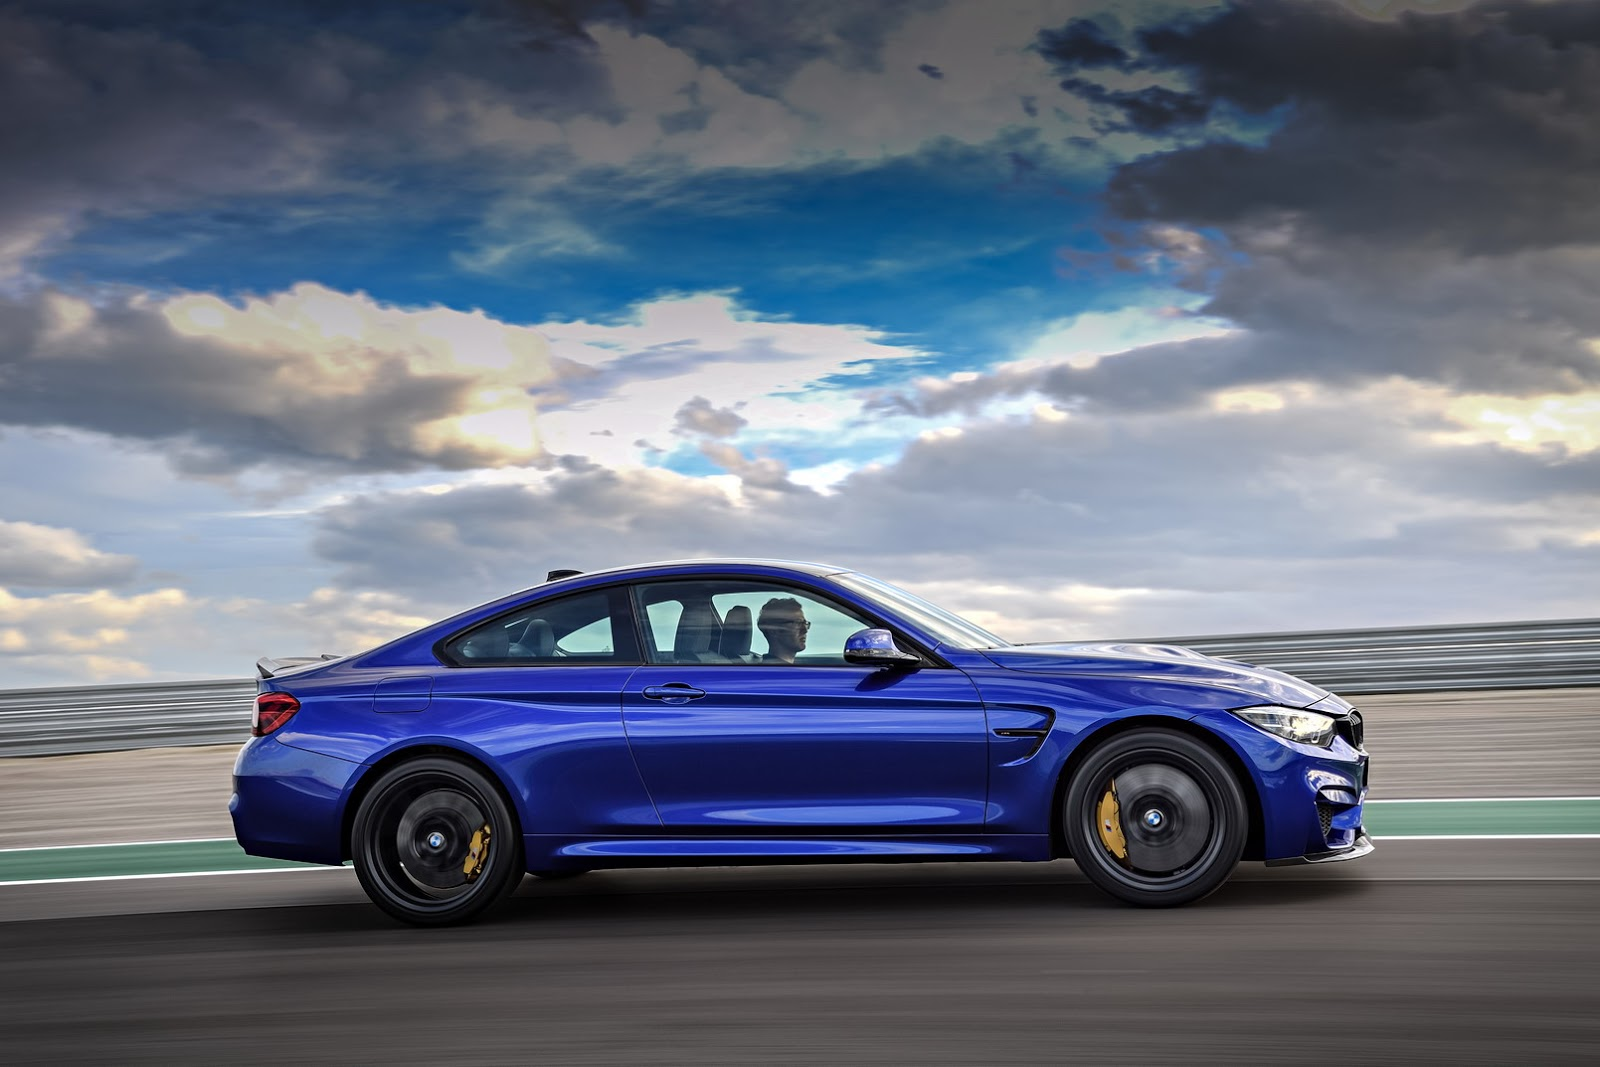 454HP BMW M4 CS Slots Below The Mighty GTS | Carscoops